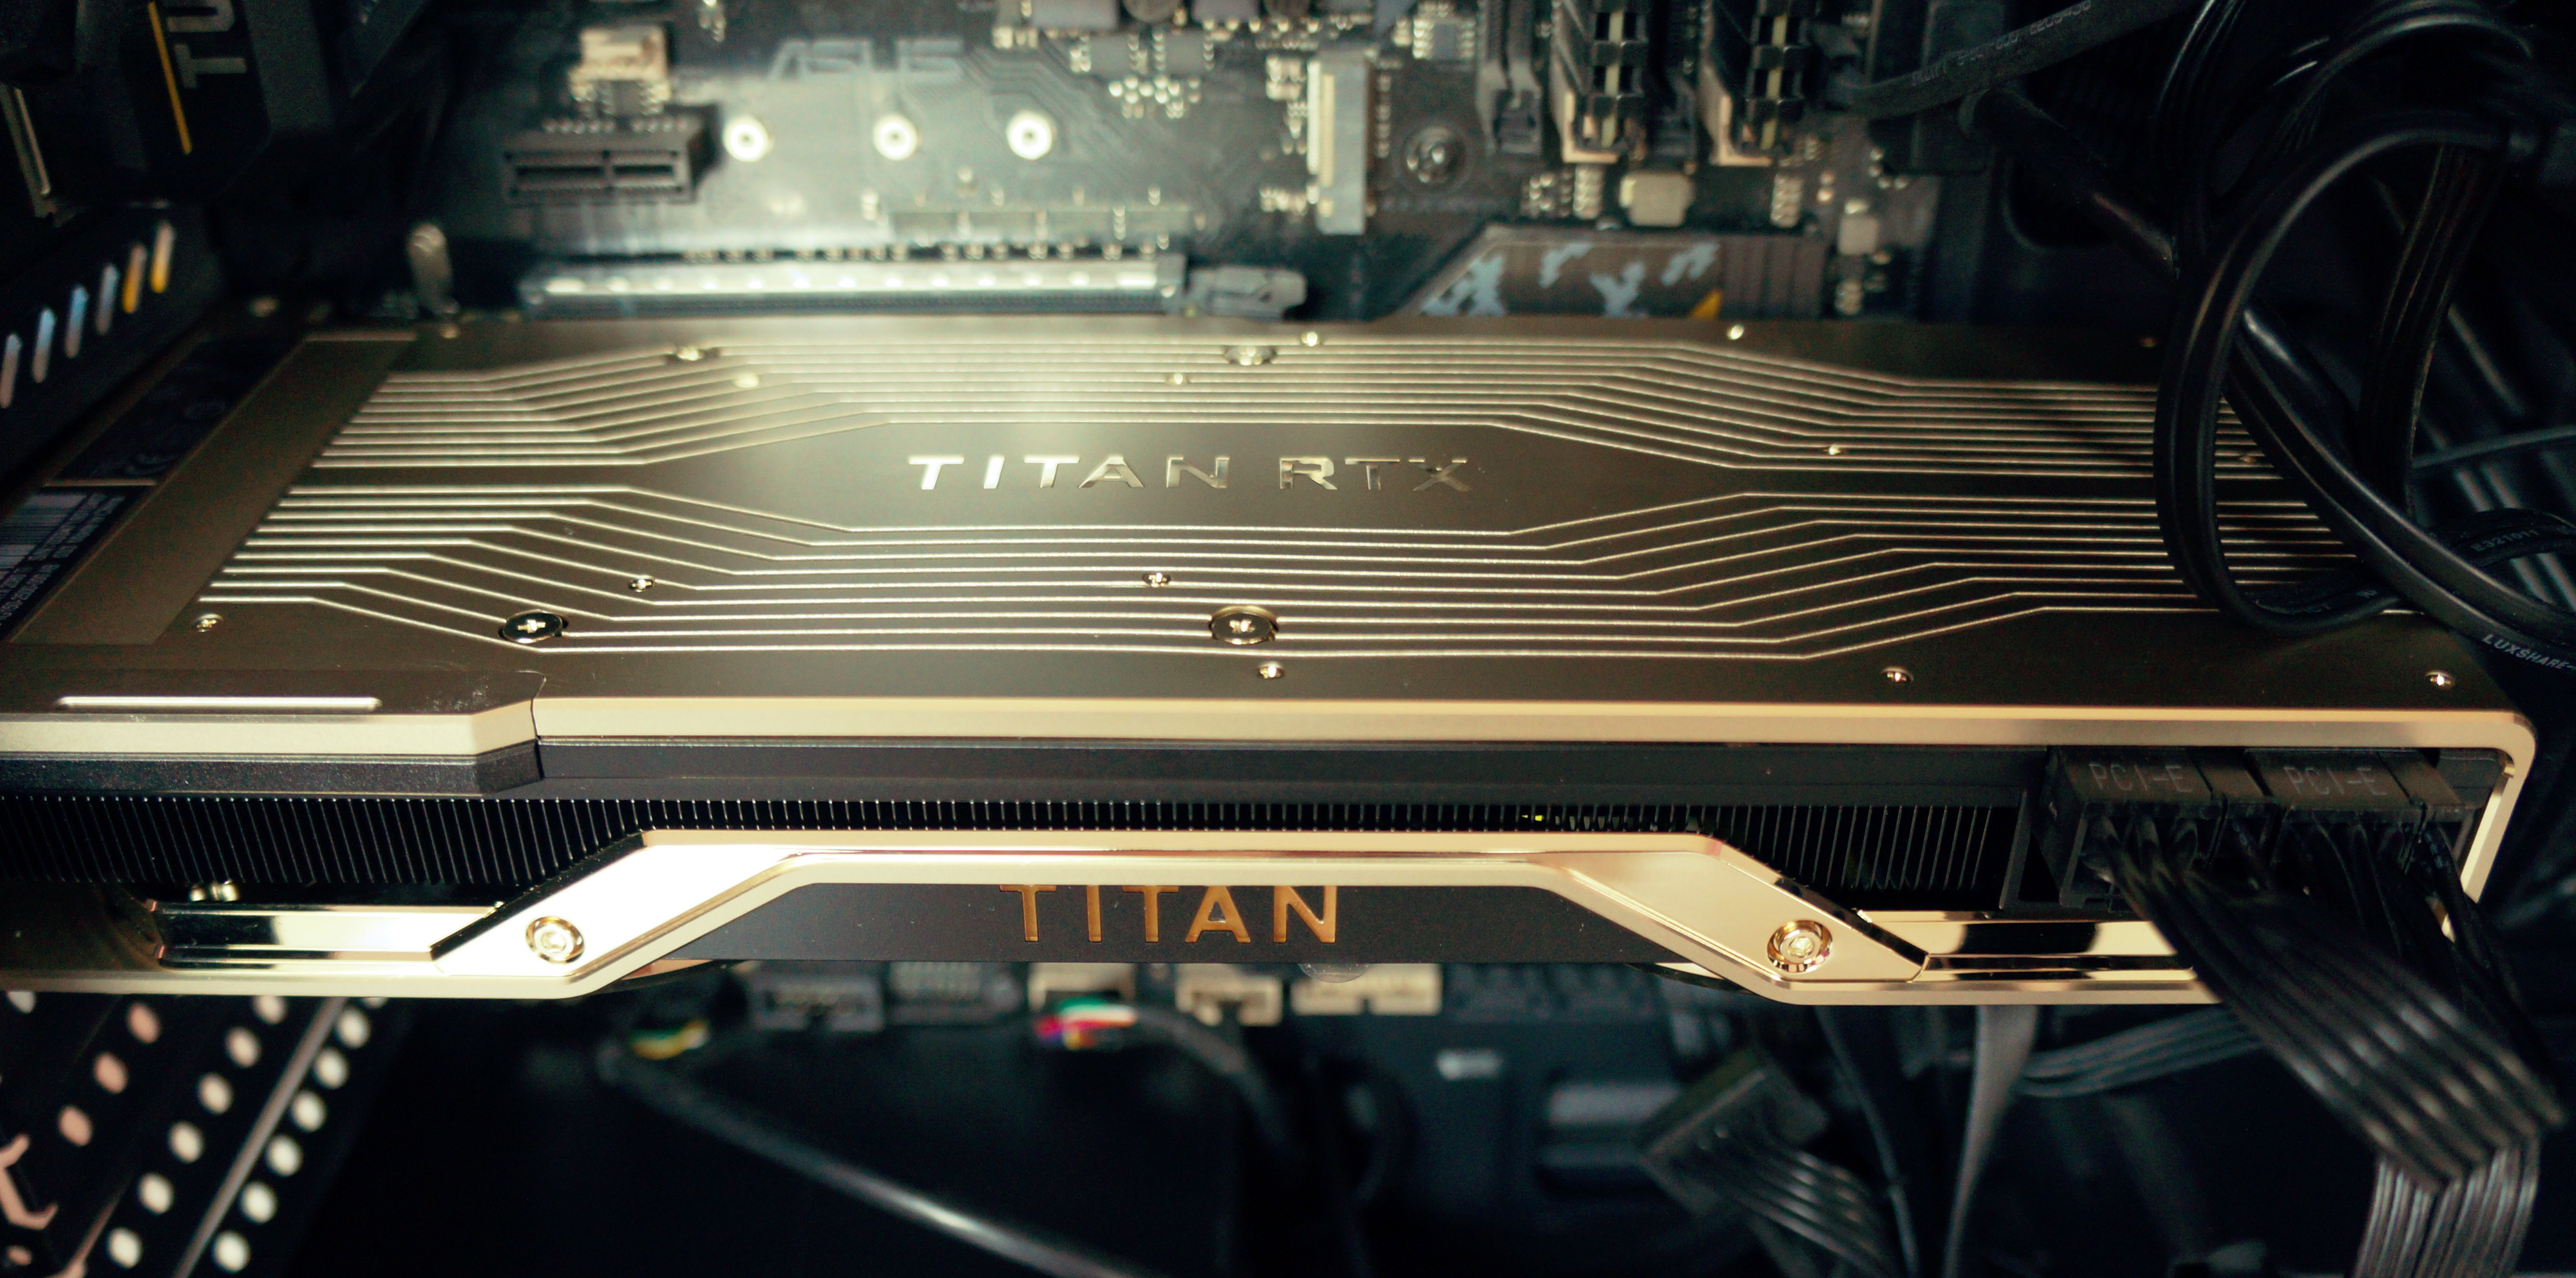 Titan RTX: Quality time with the top Turing GPU - Slav